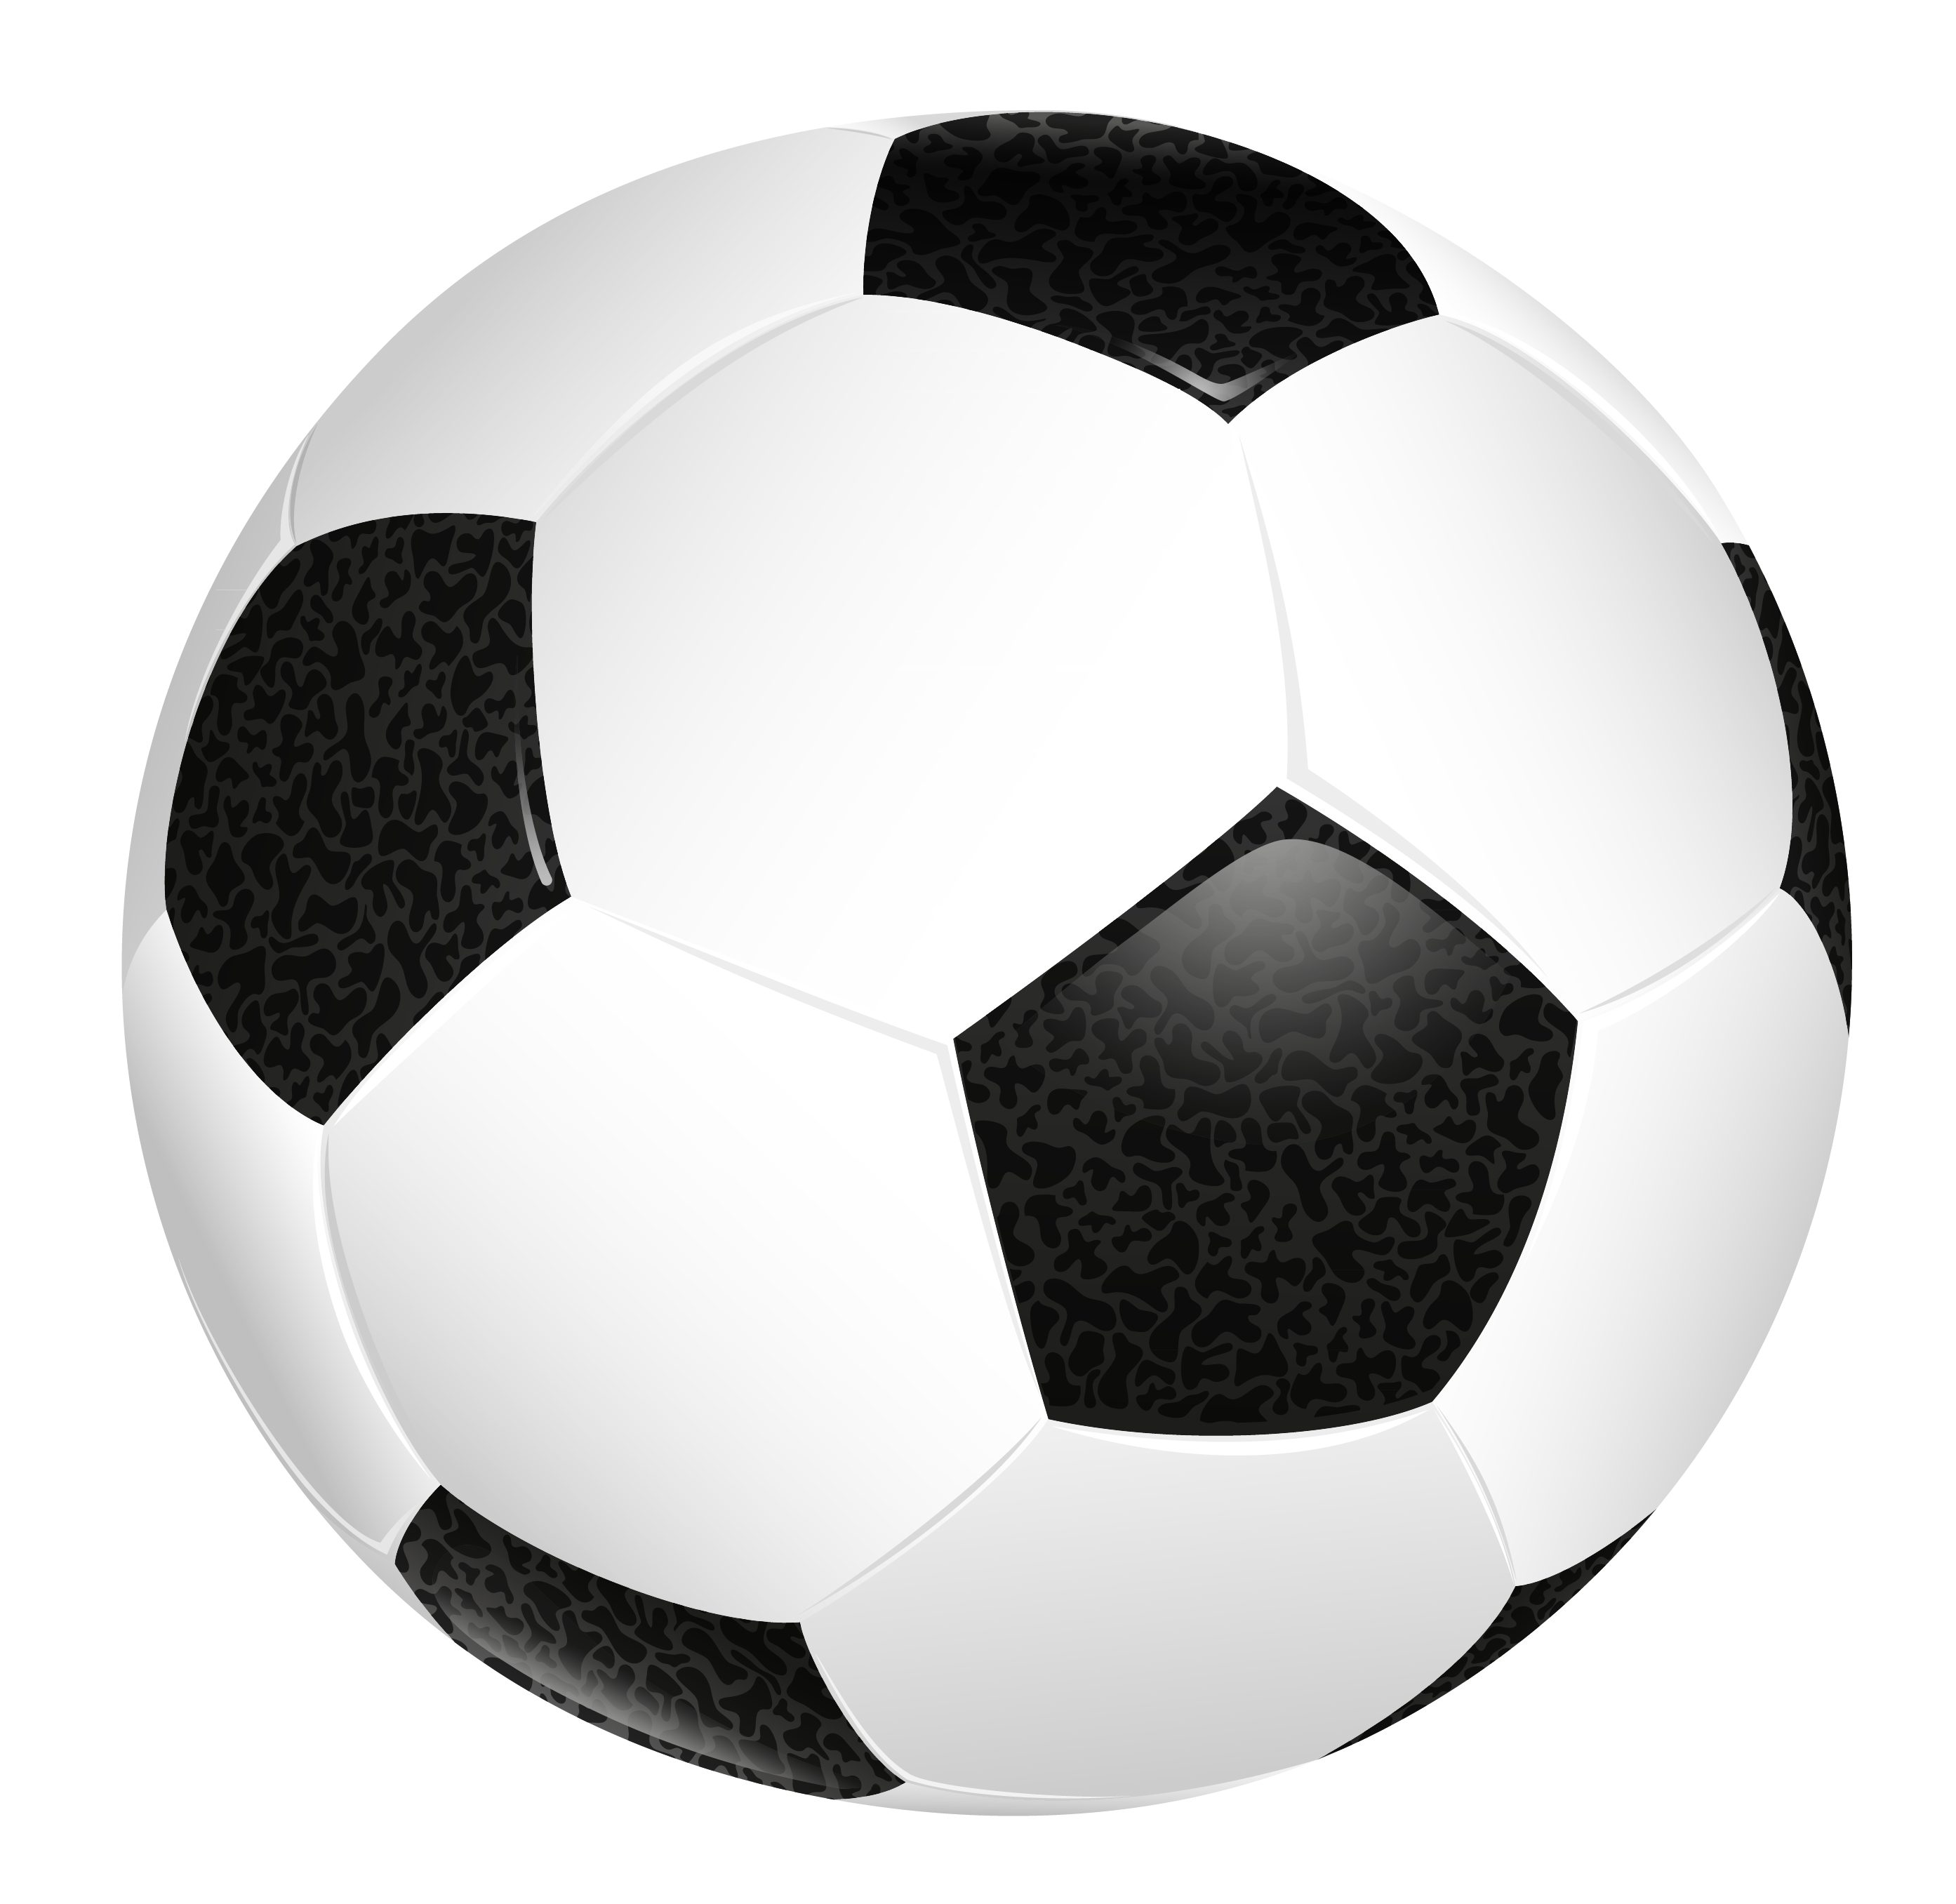 soccer ball clipart clear background